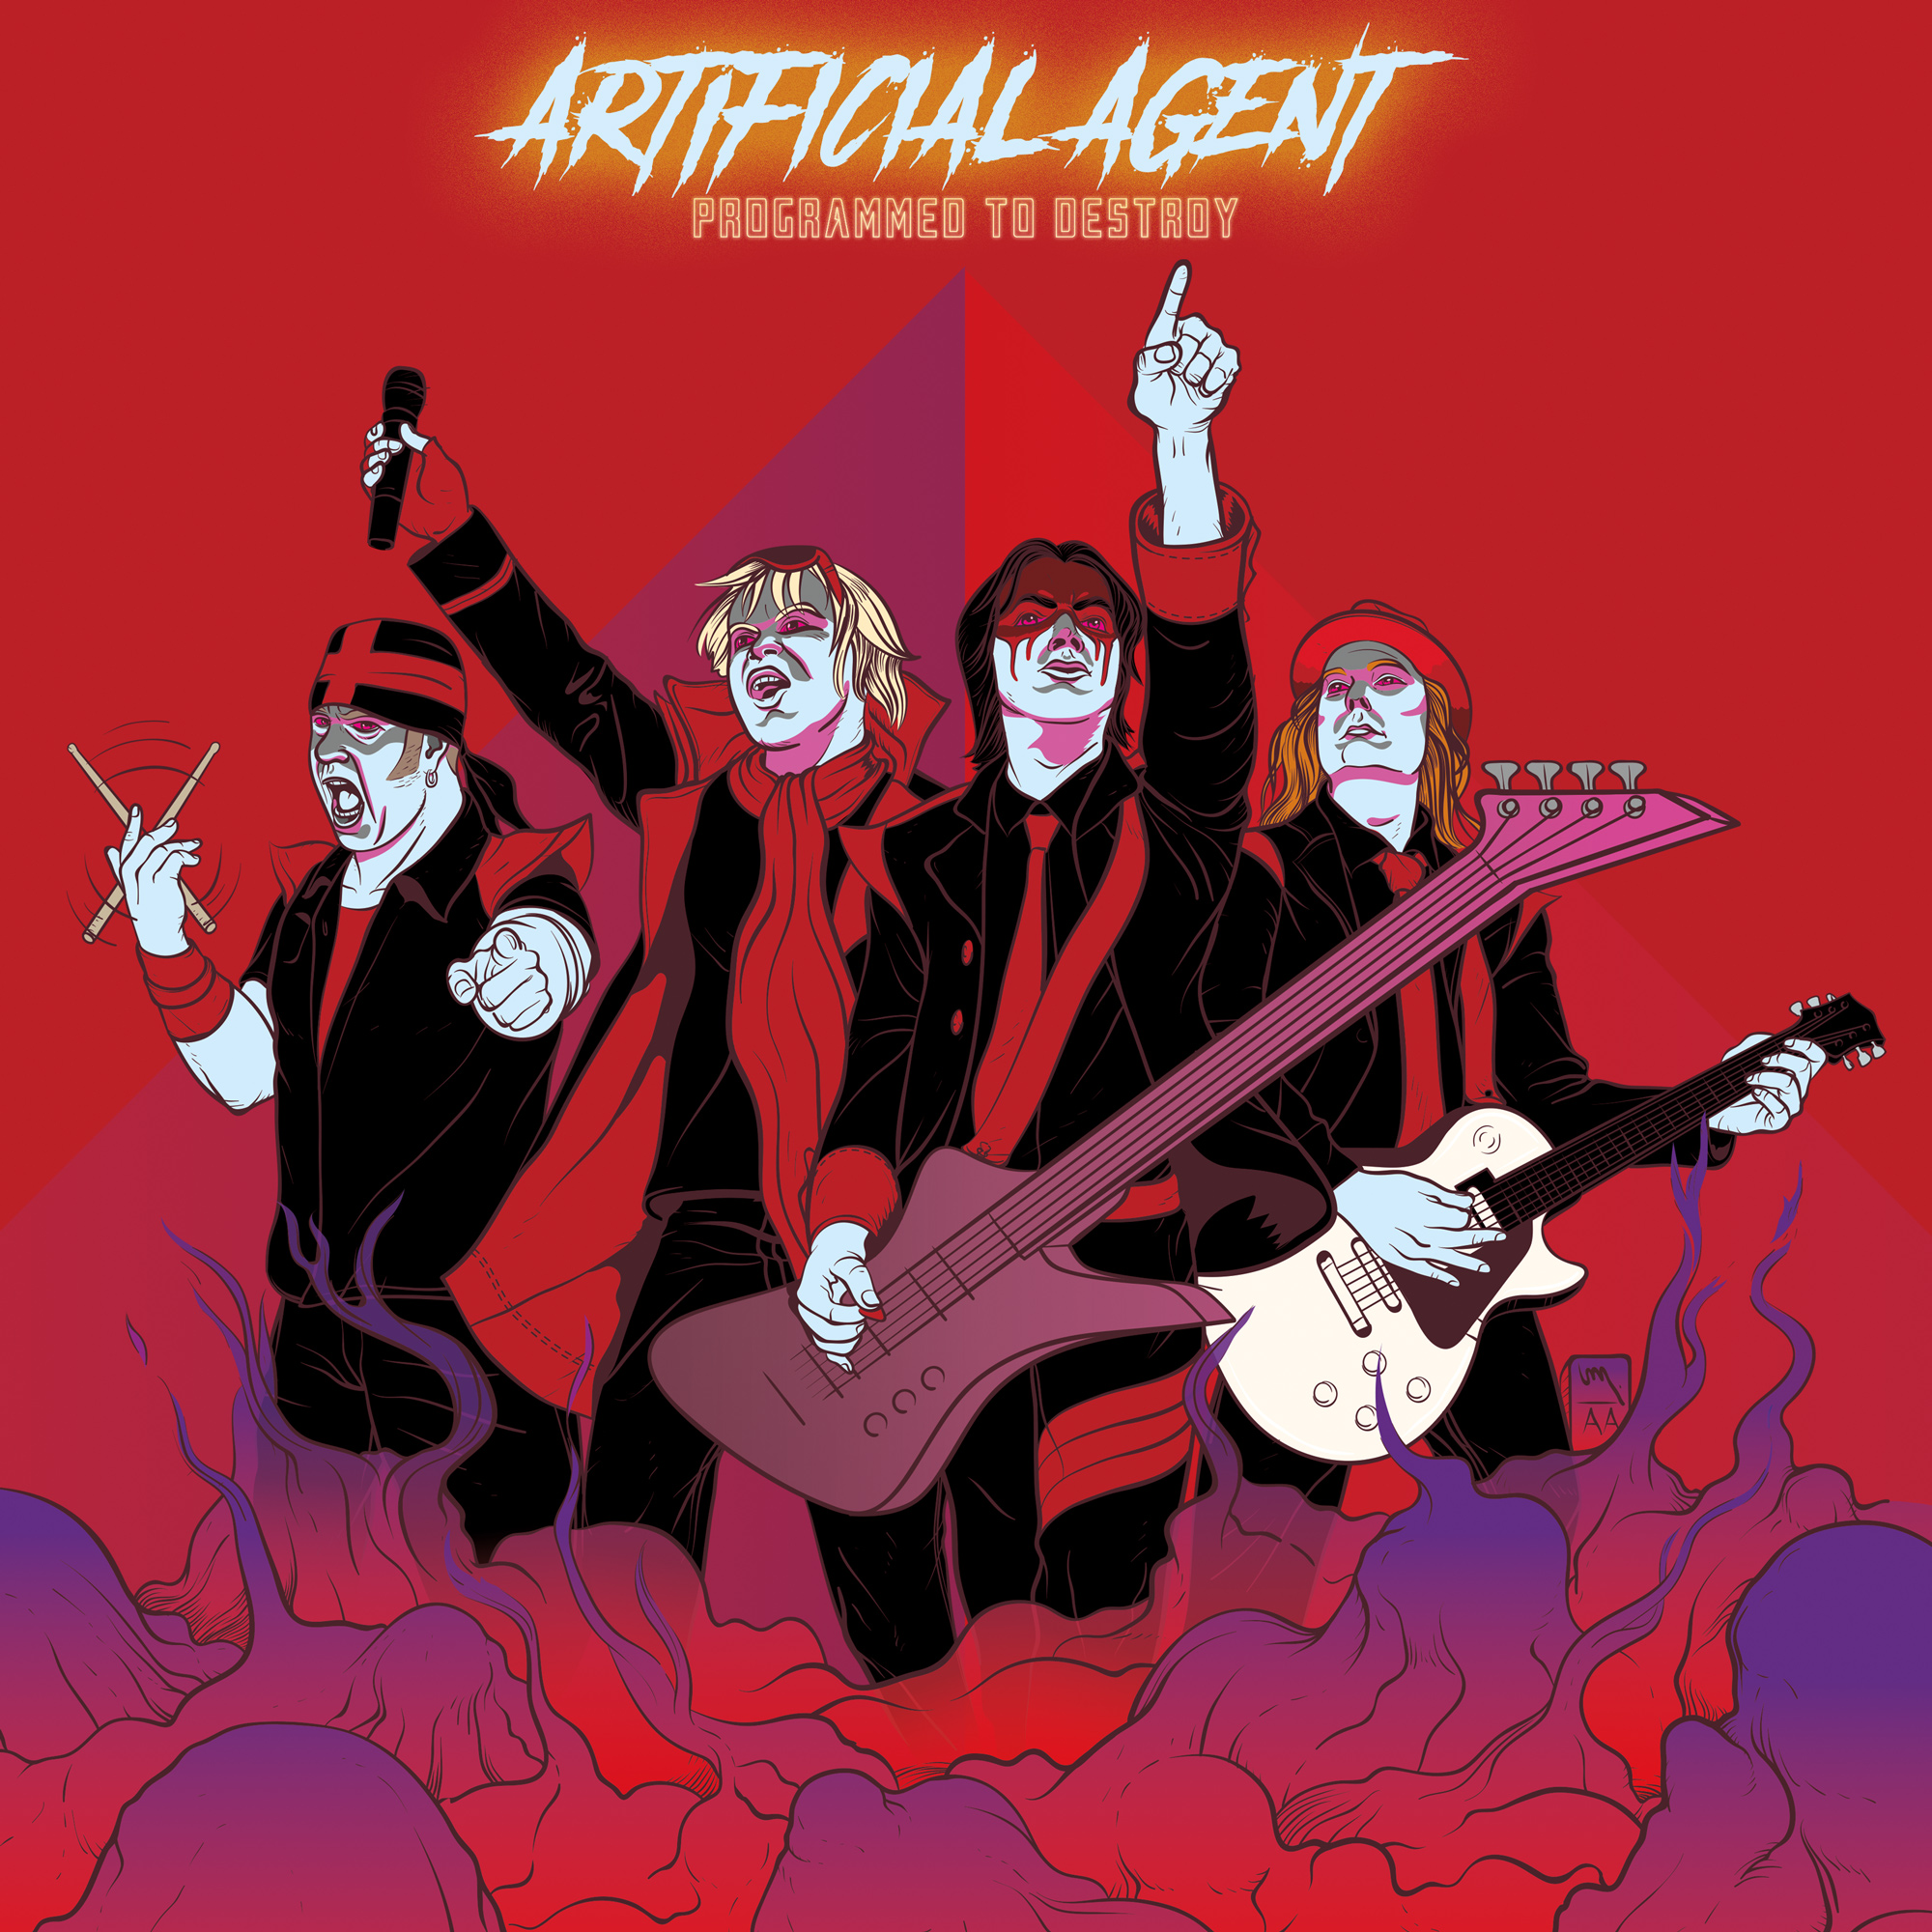 ArtificialAgent_ProgrammedToDestroy_cover.jpg